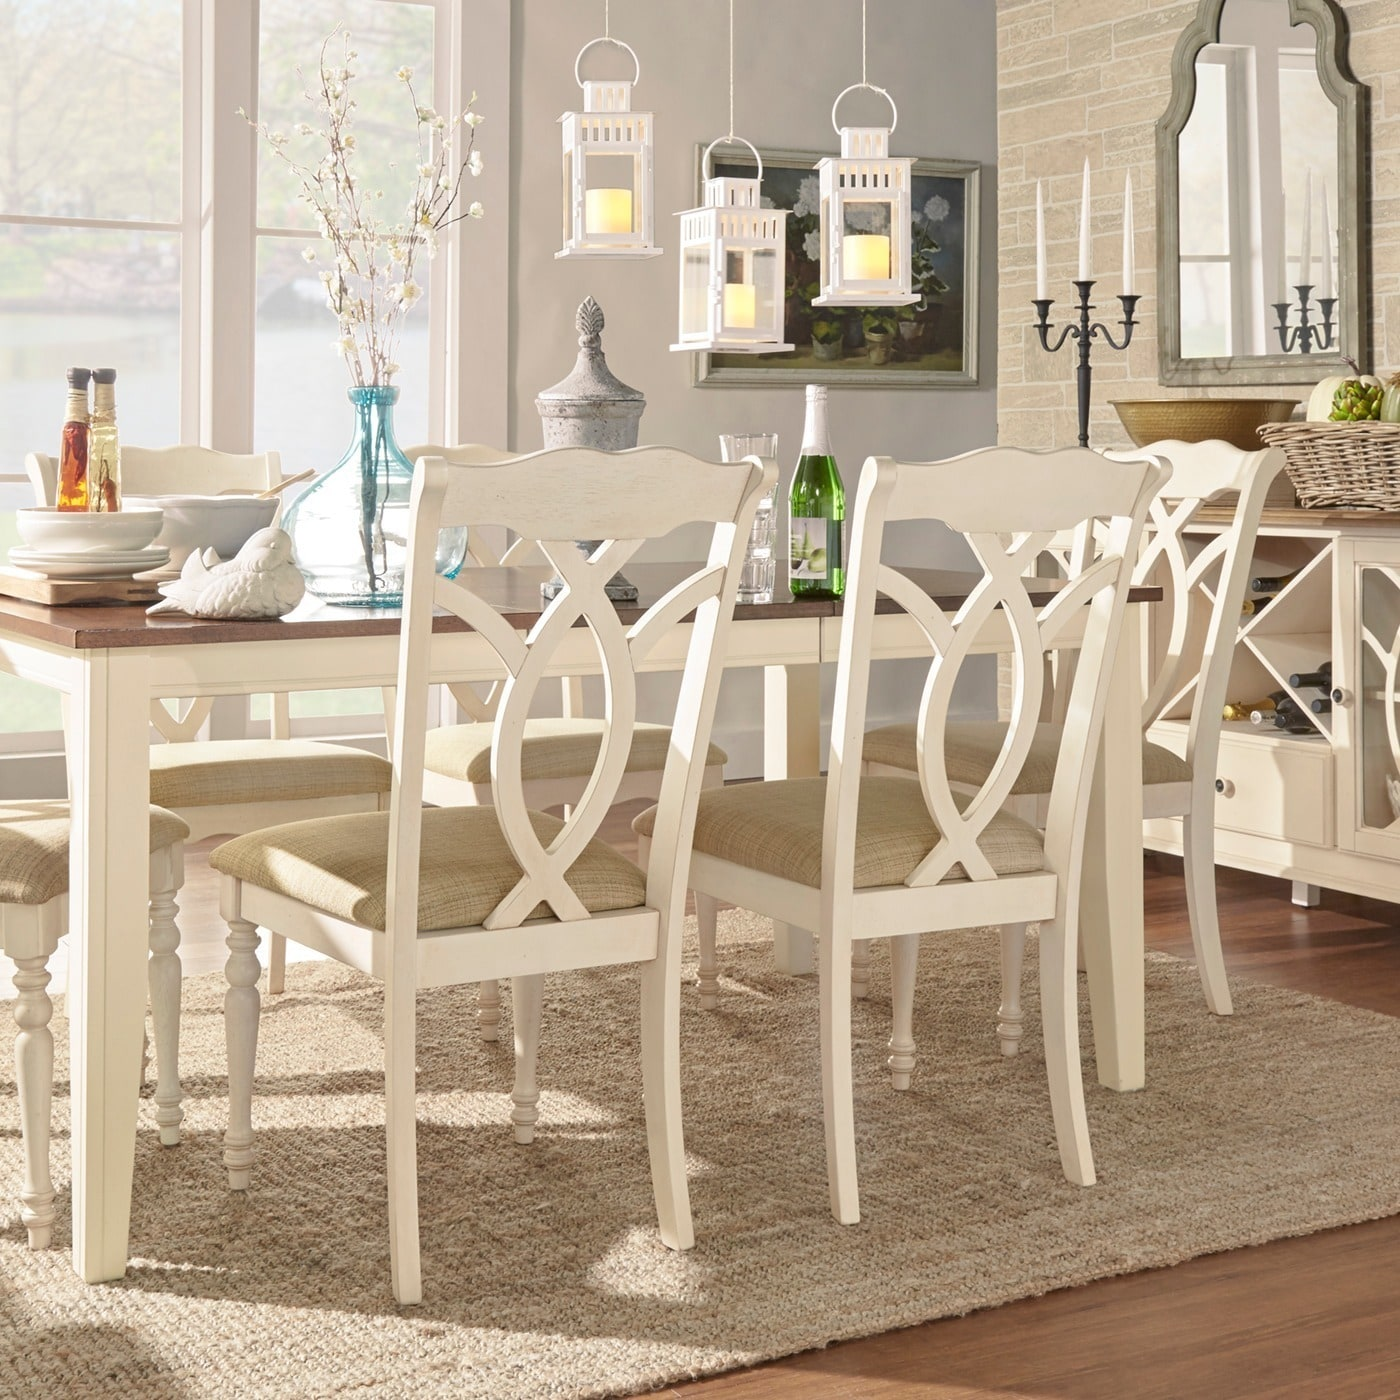 Shayne Country Antique White Beige Dining Chairs (Set Of 2) By INSPIRE Q  Classic   Free Shipping Today   Overstock   17136472